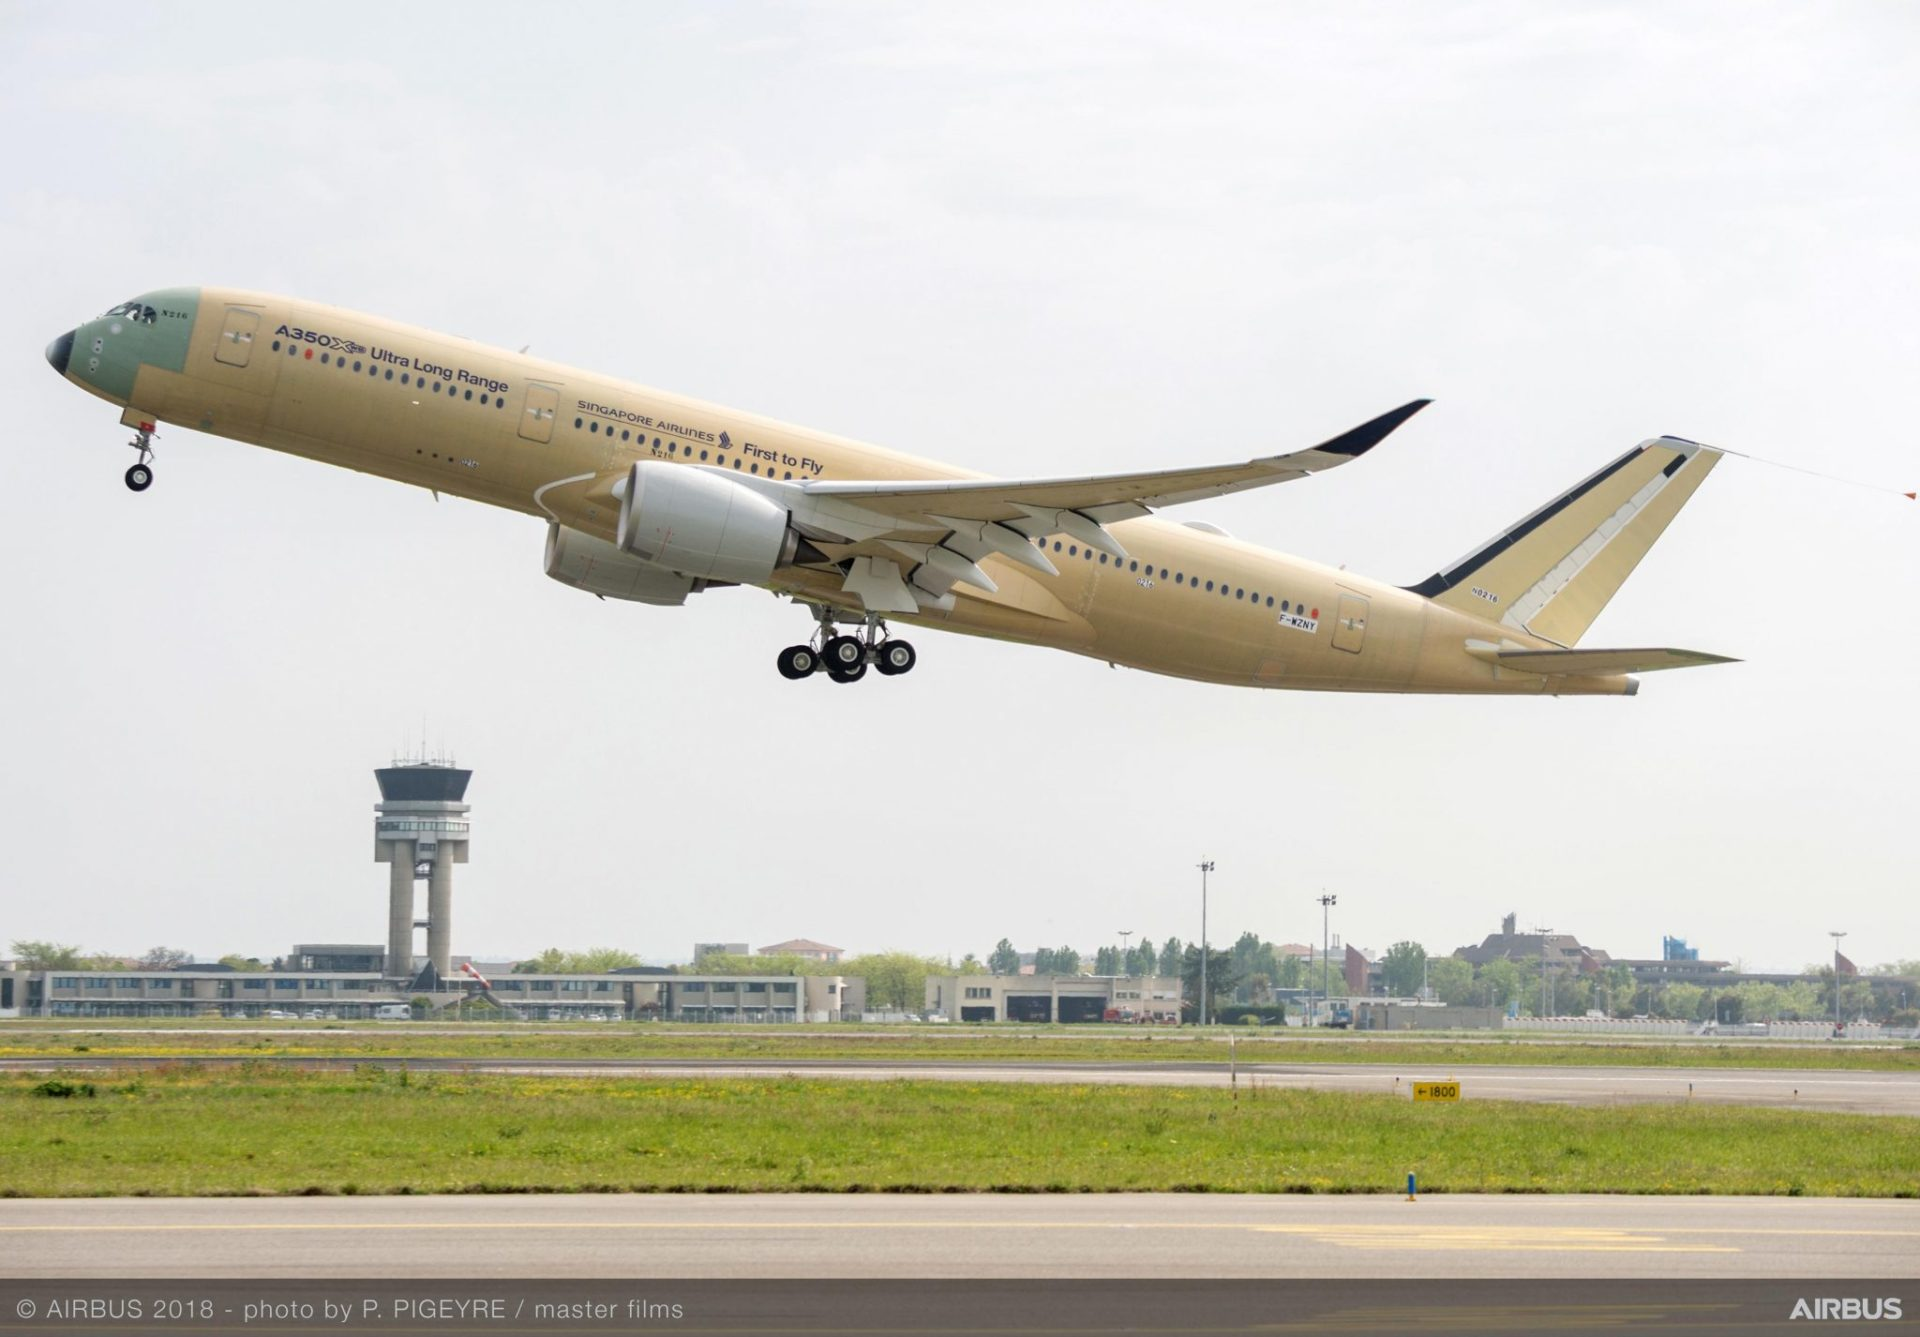 A350-900 ULR Singapore Airlines take off